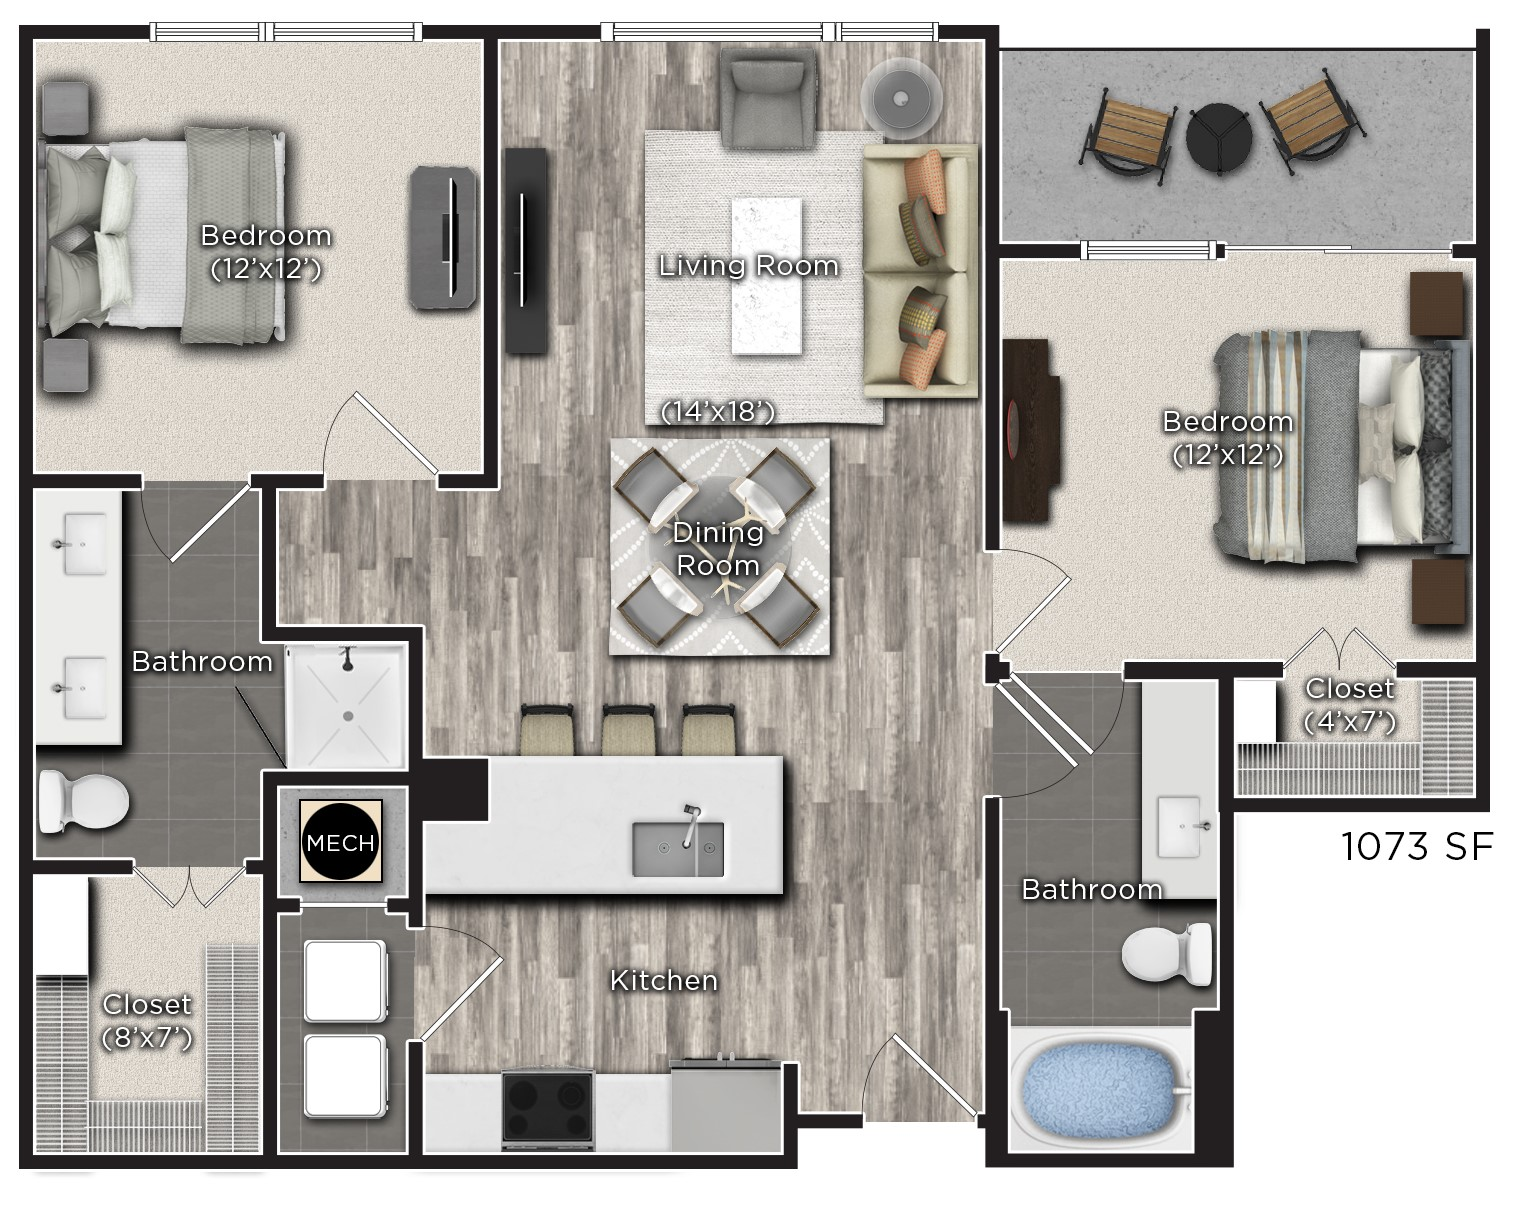 Tens on West - Floorplan - P